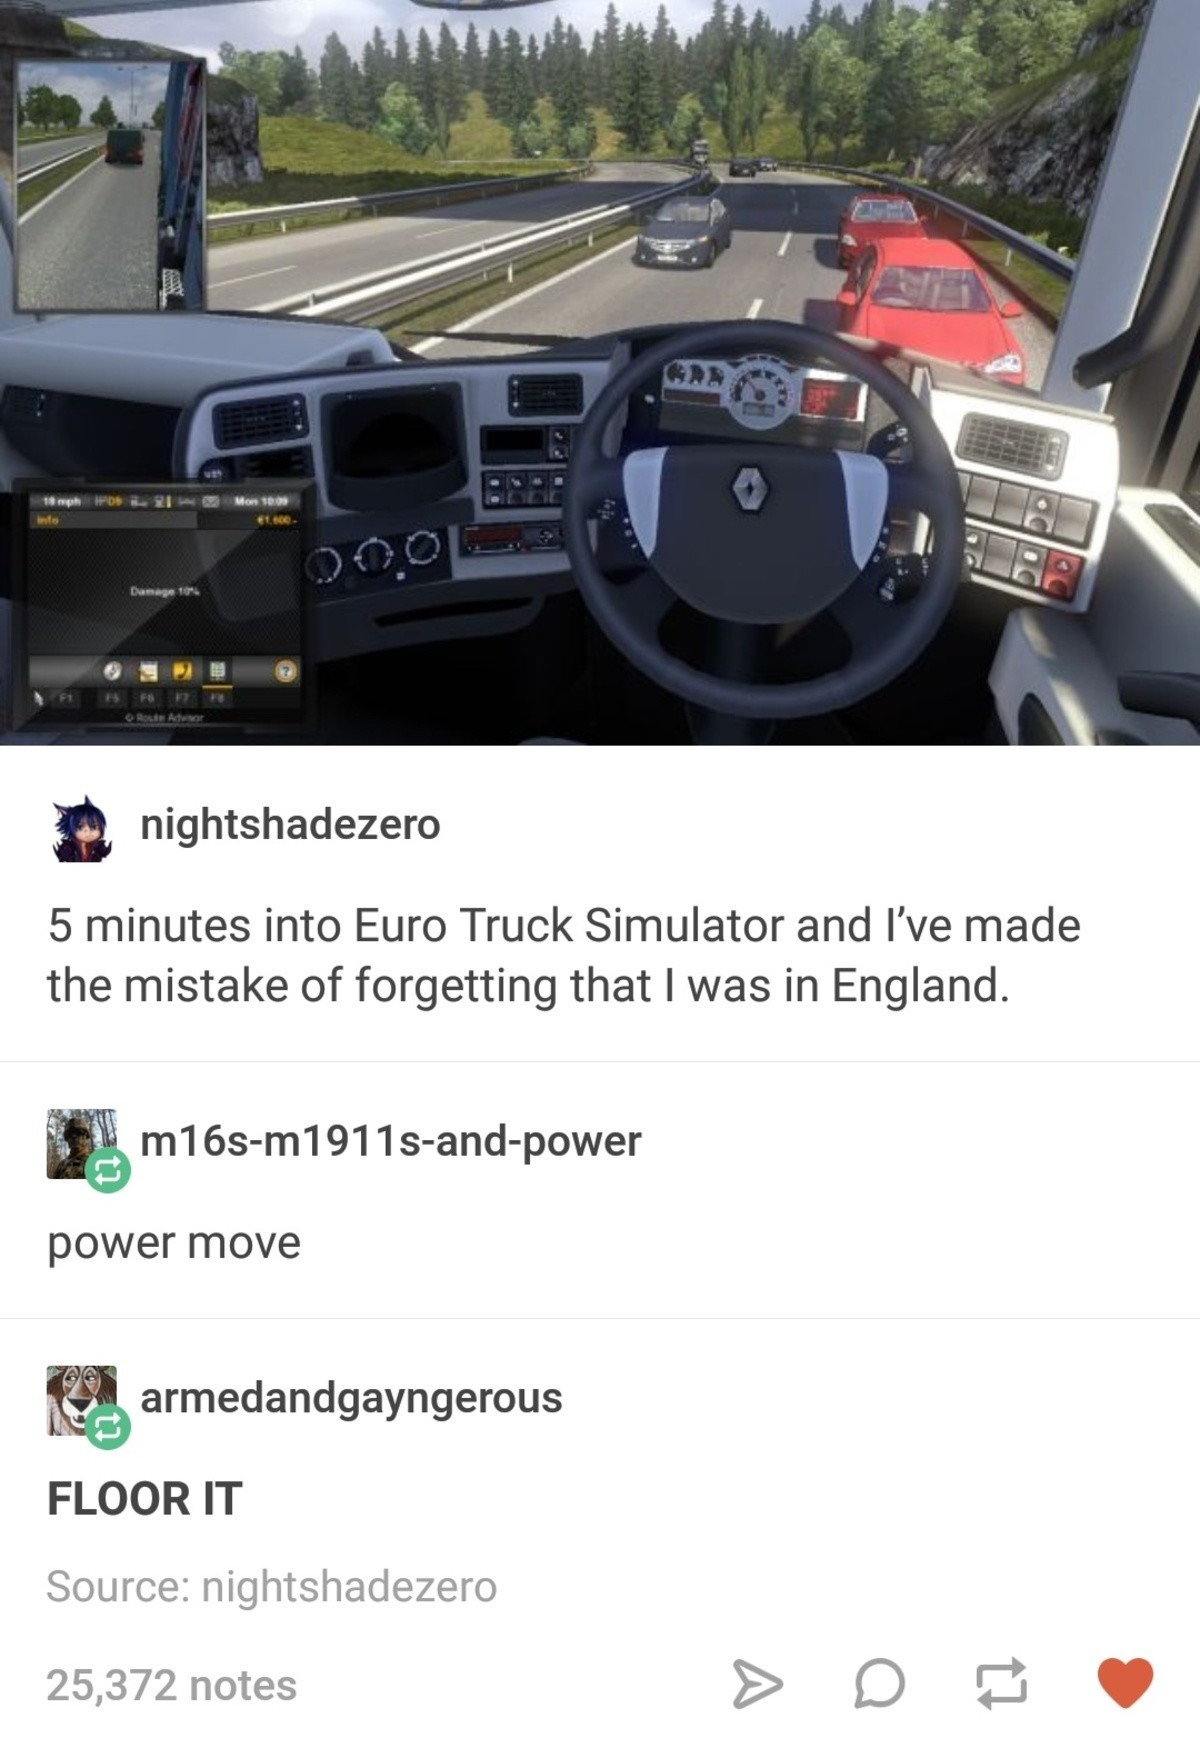 Euro truck simulator. . 5 minutes into Euro Truck Simulator and I' made the mistake of forgetting that I was in England. illia, power move FLOOR IT Source: 25,